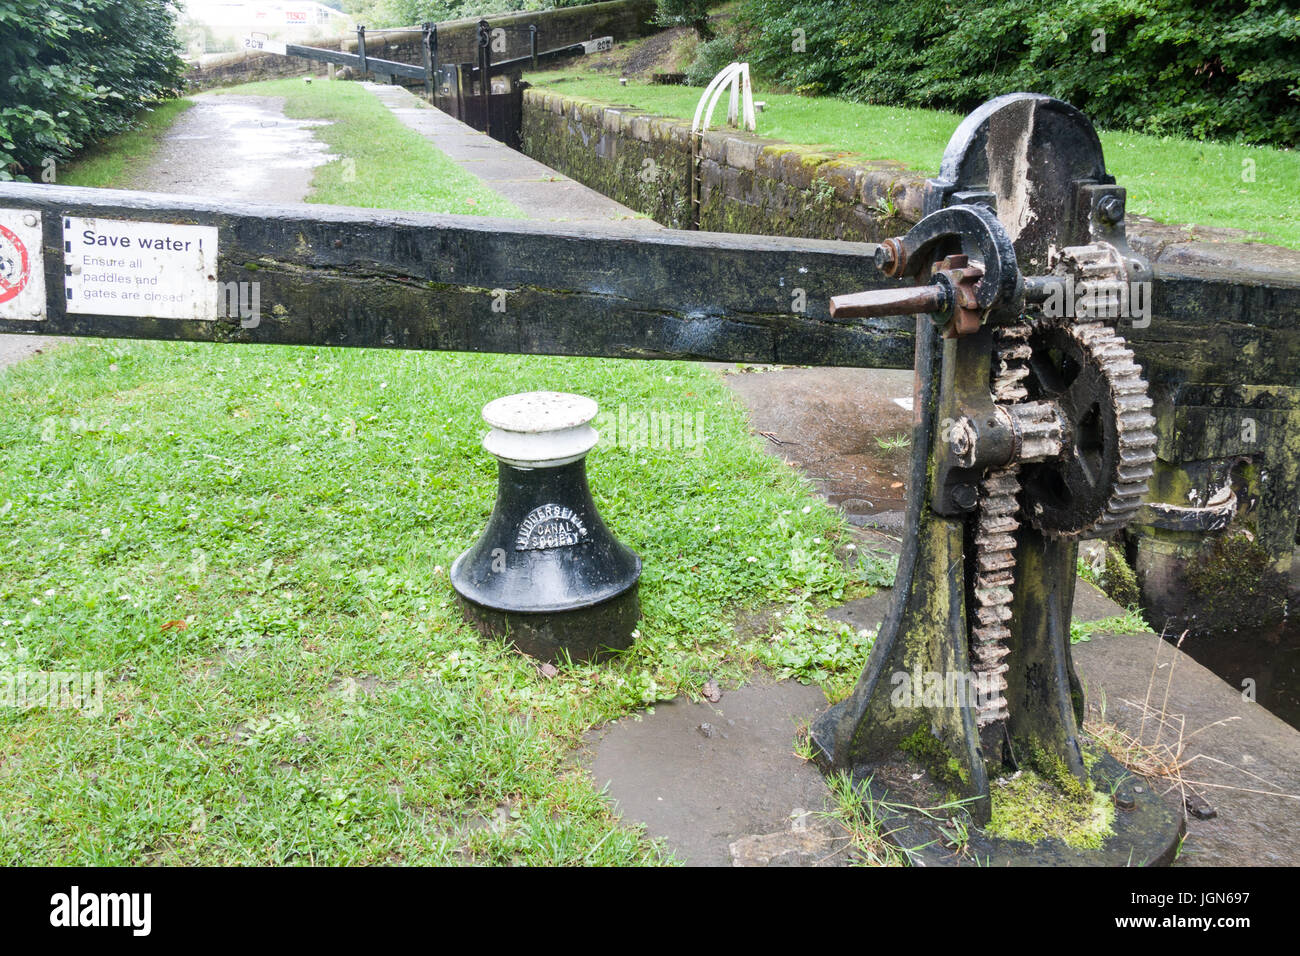 Lock gate mechanism on the Huddersfield Narrow Canal in Uppermill, Oldham, Lancashire, England, United Kingdom - Stock Image